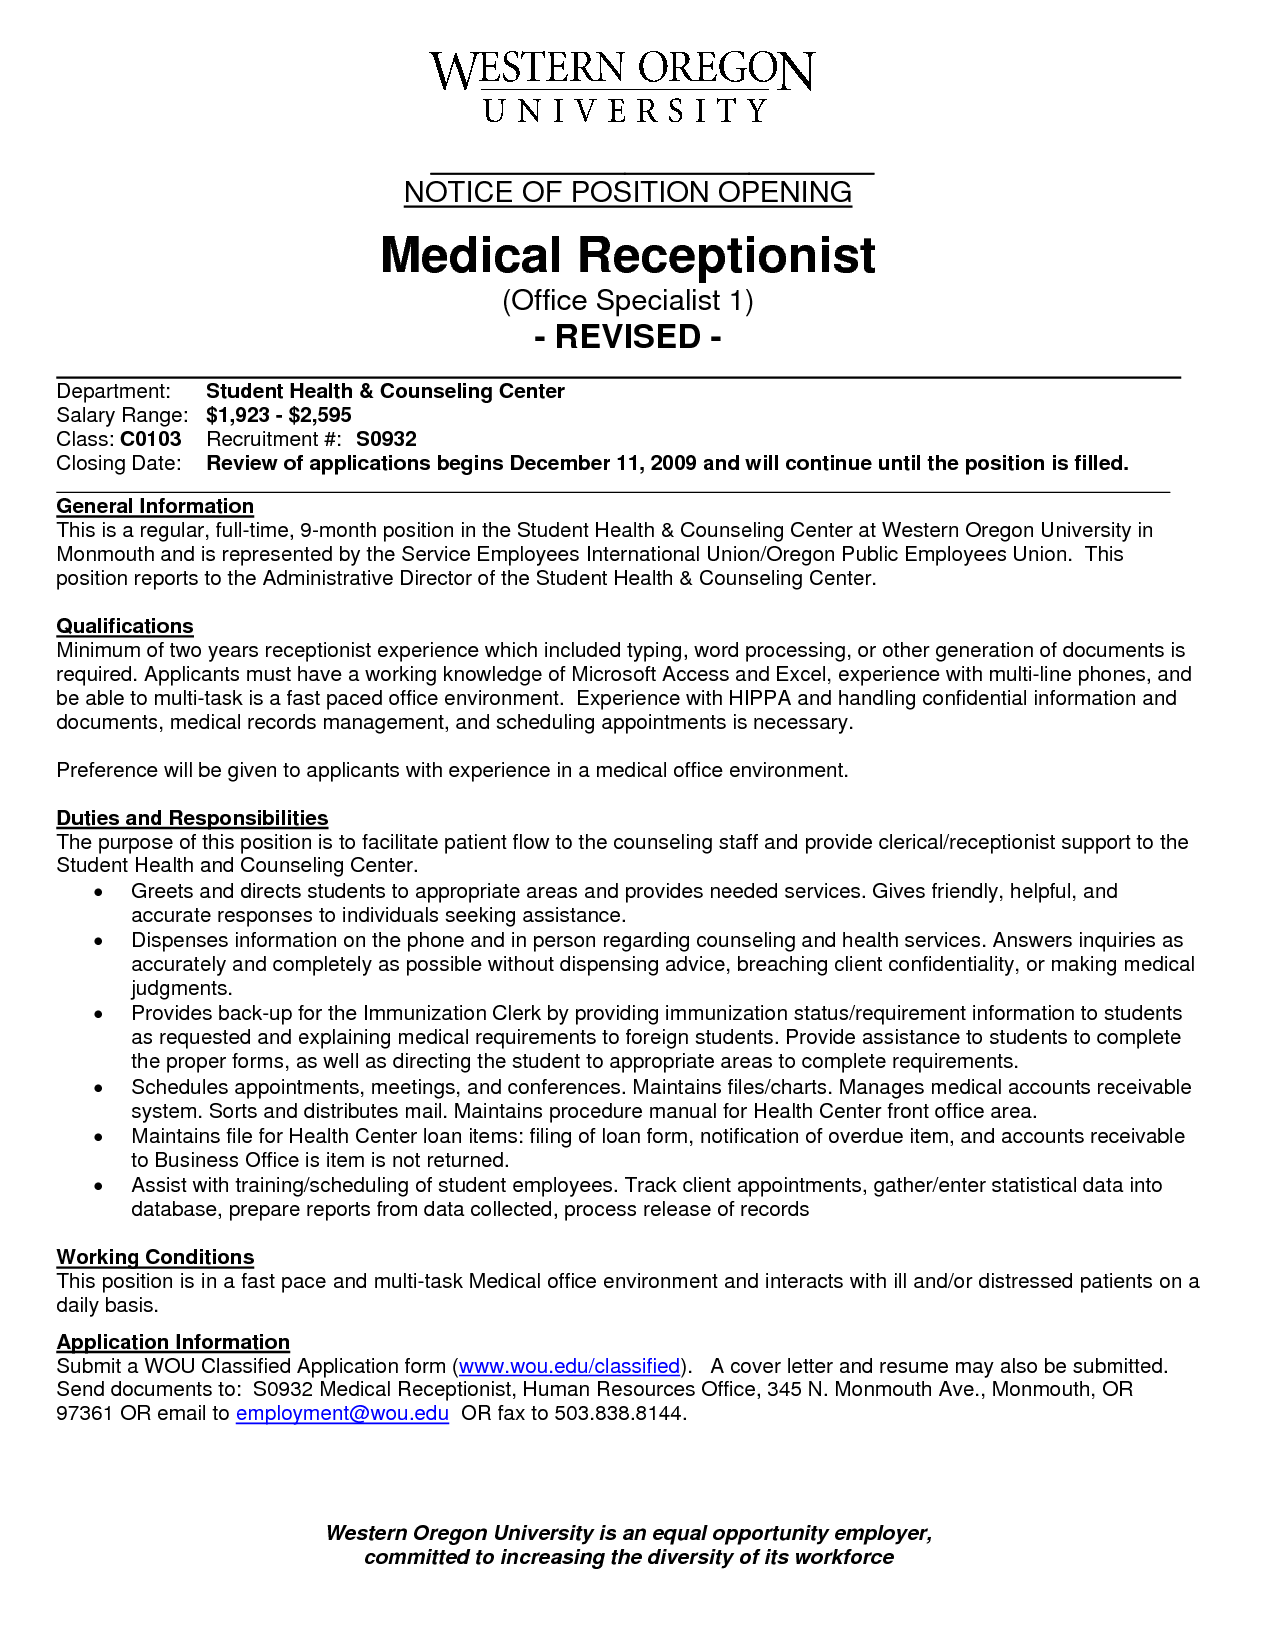 medical receptionist resume - solarfm.tk